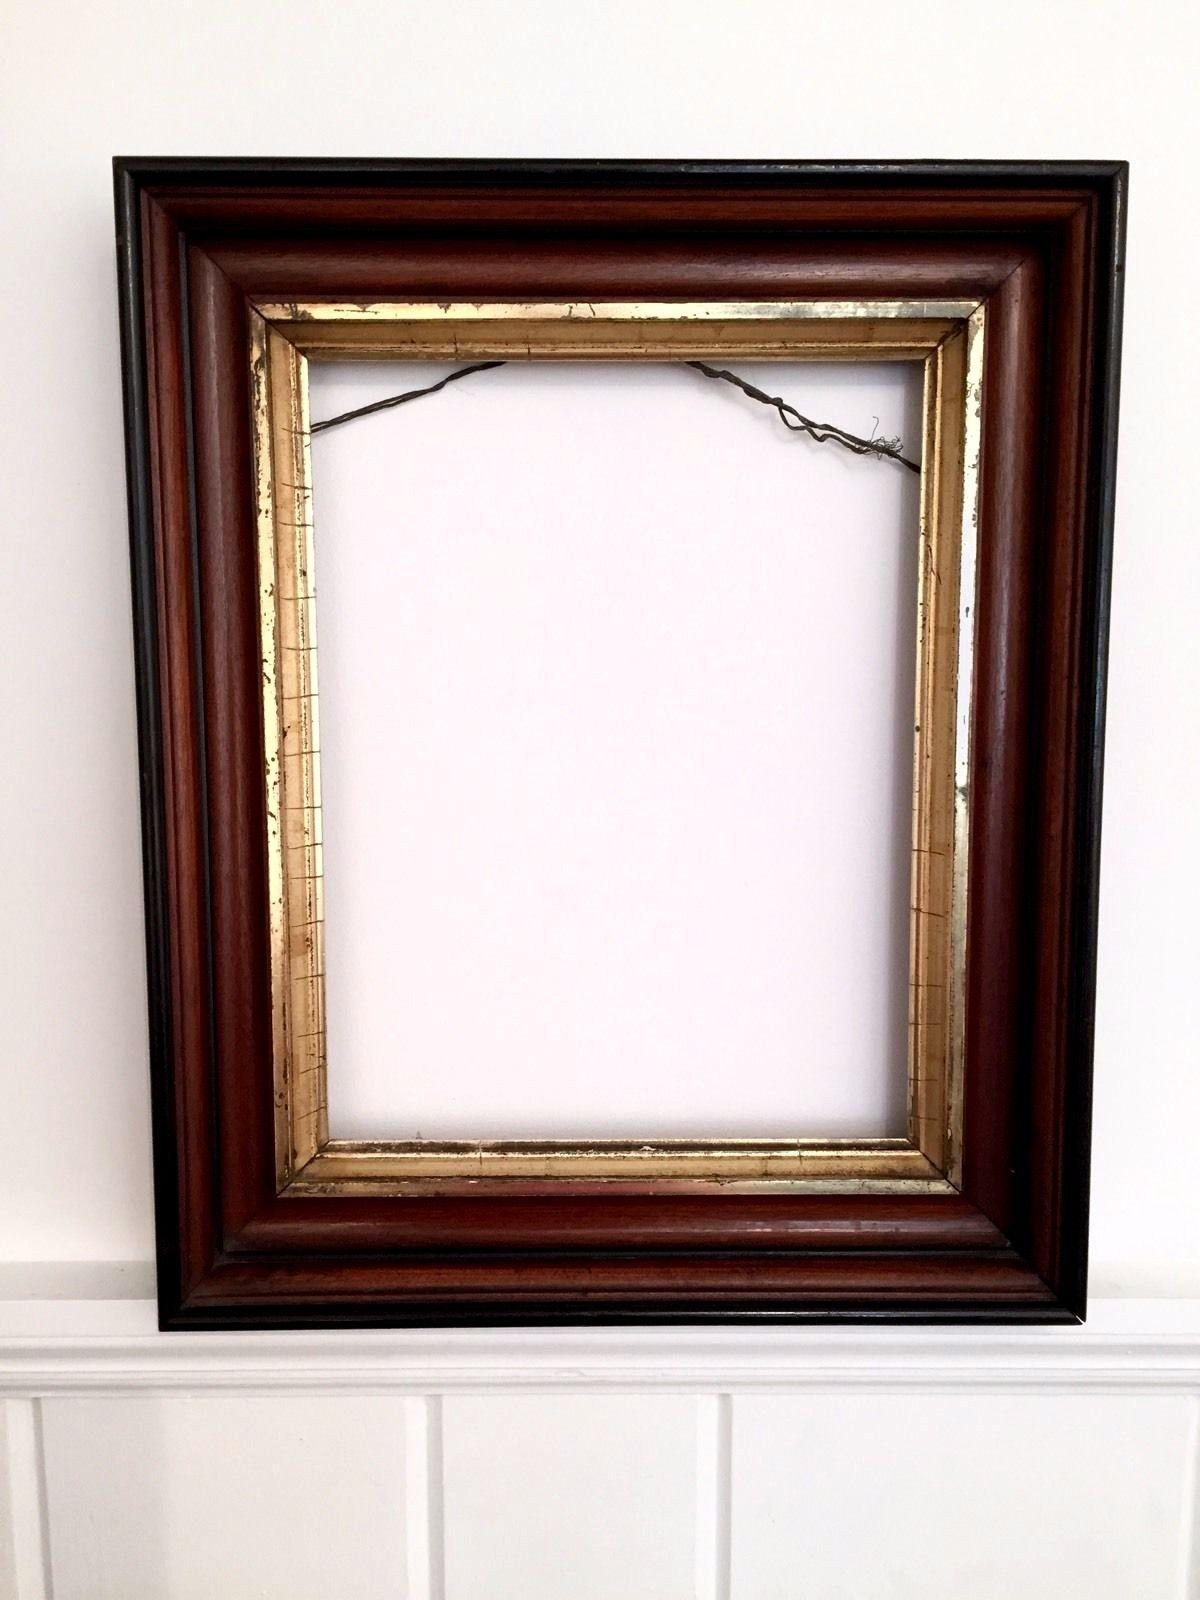 Victorian Antique Gilt Mirror Painting Art Frame Large Wood Ornate Regarding Gold Gilt Mirror (Image 16 of 20)